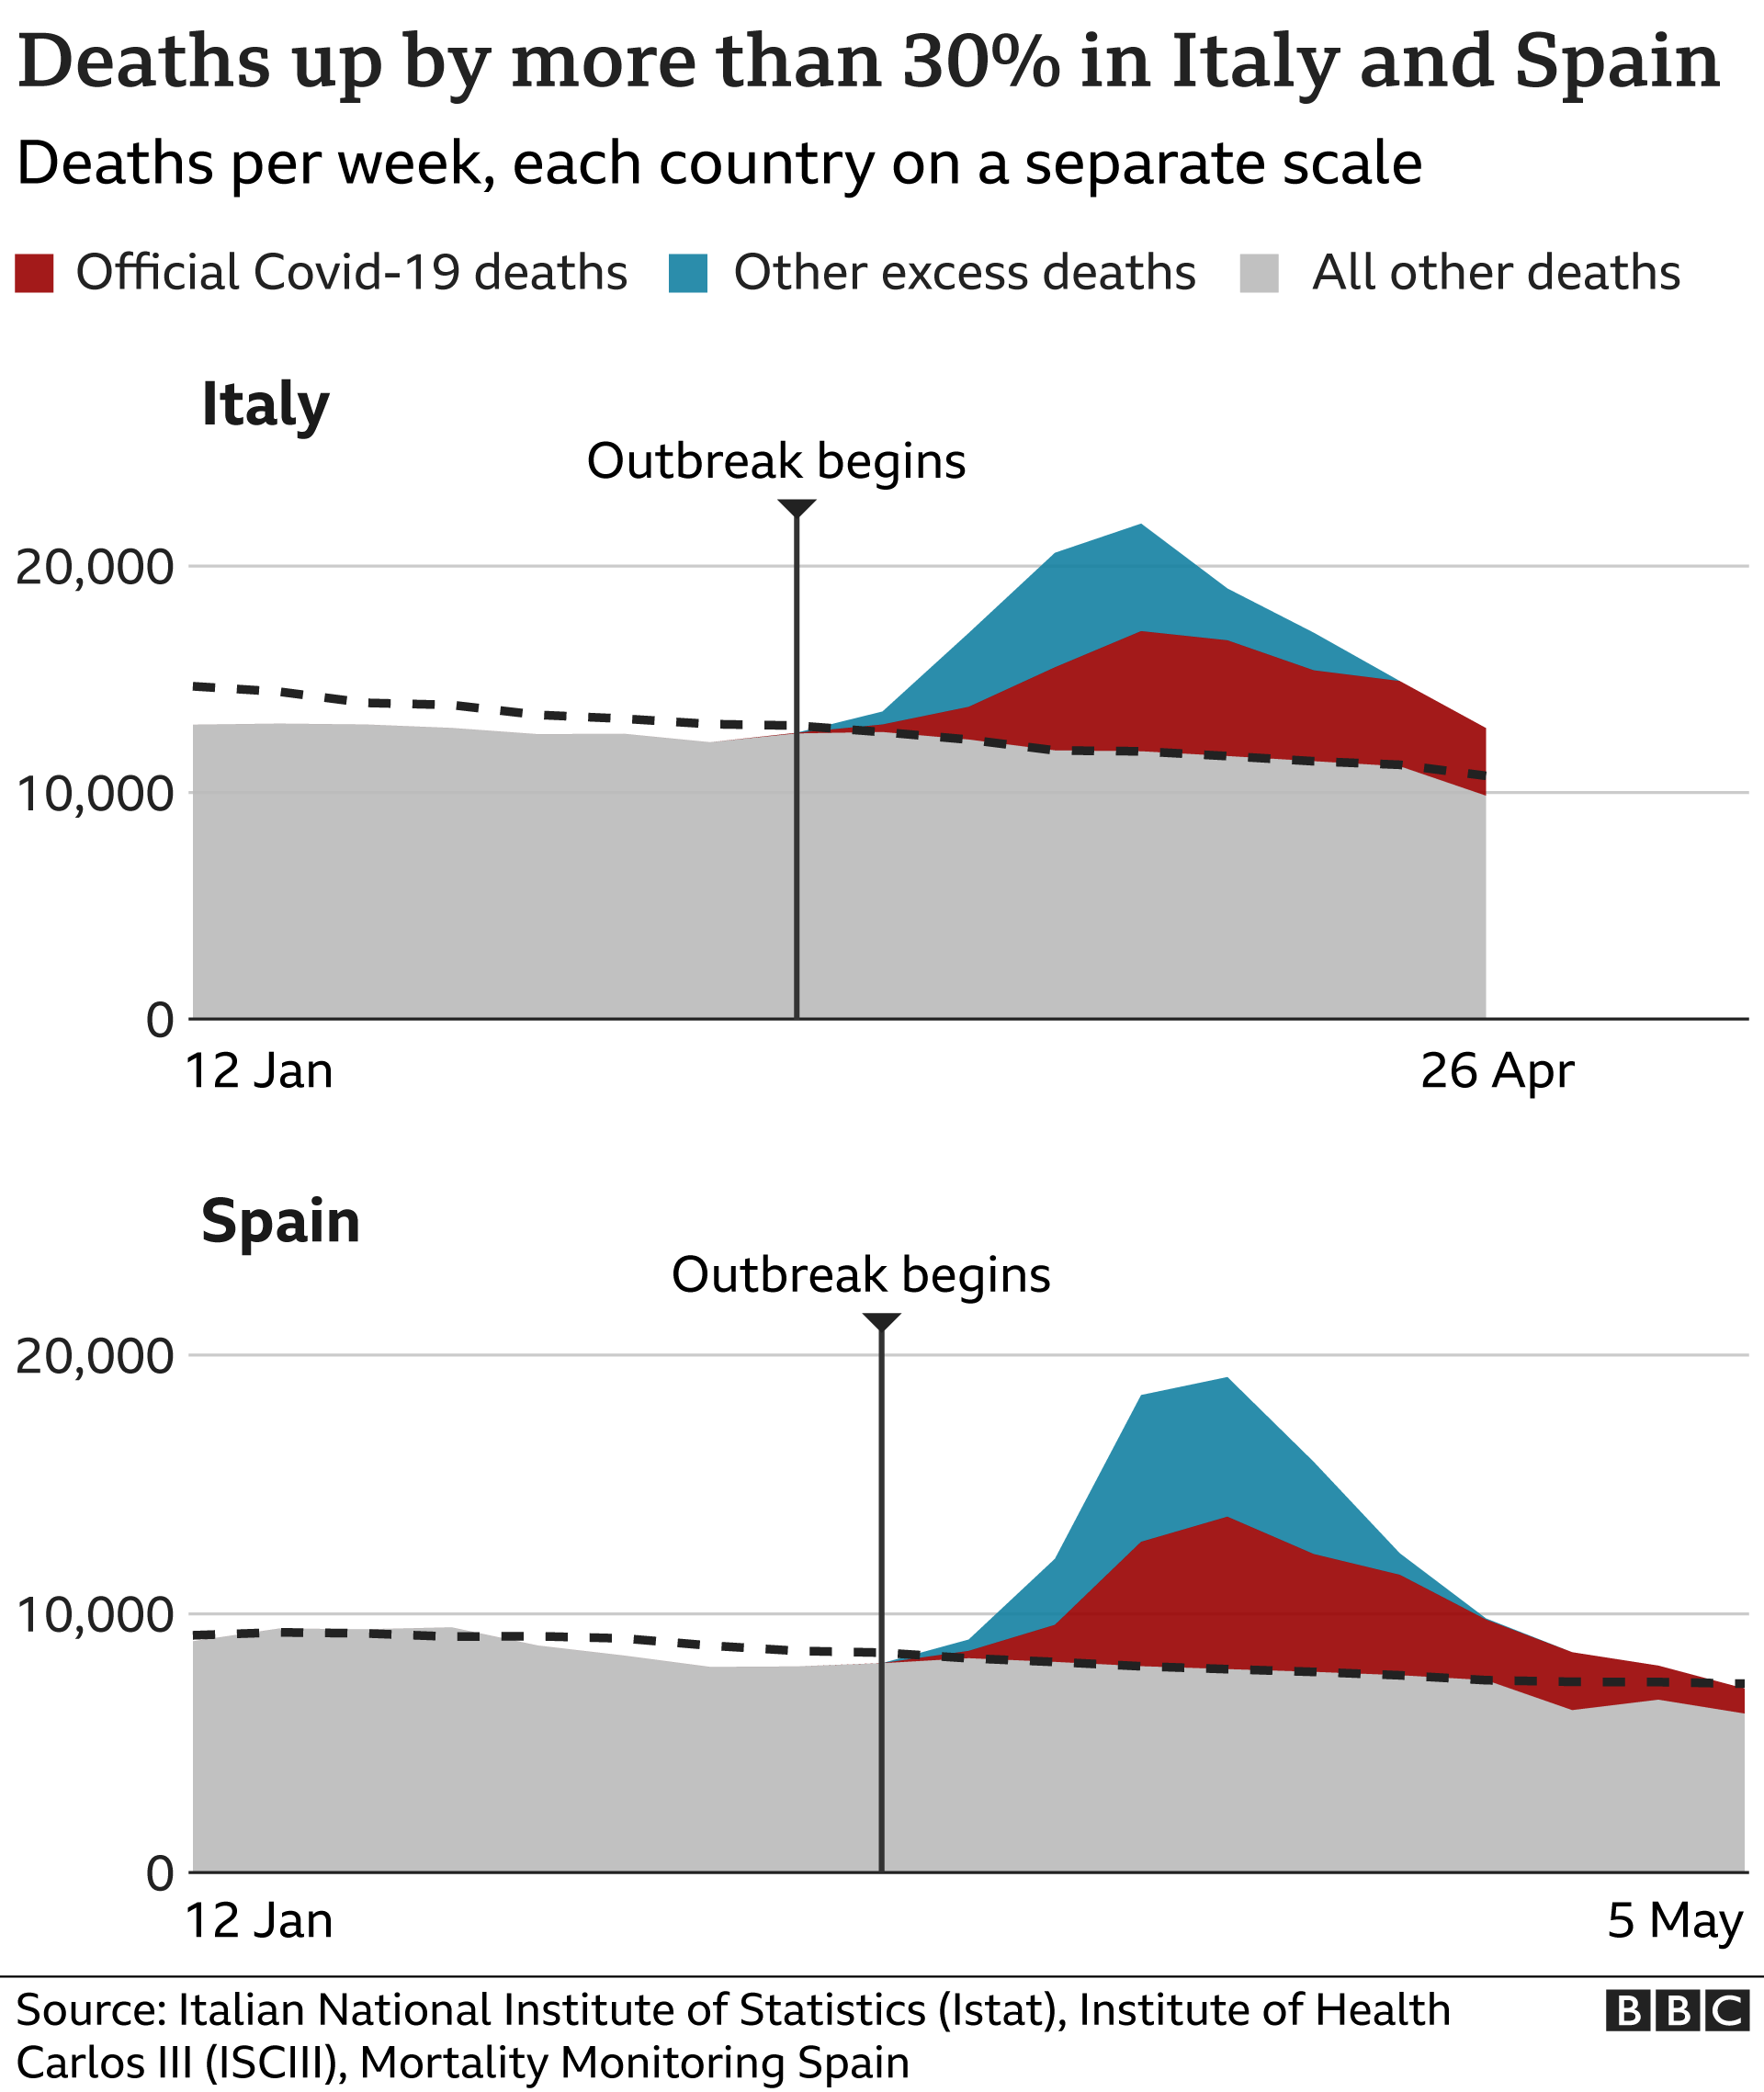 Chart comparing excess deaths in Italy versus Spain